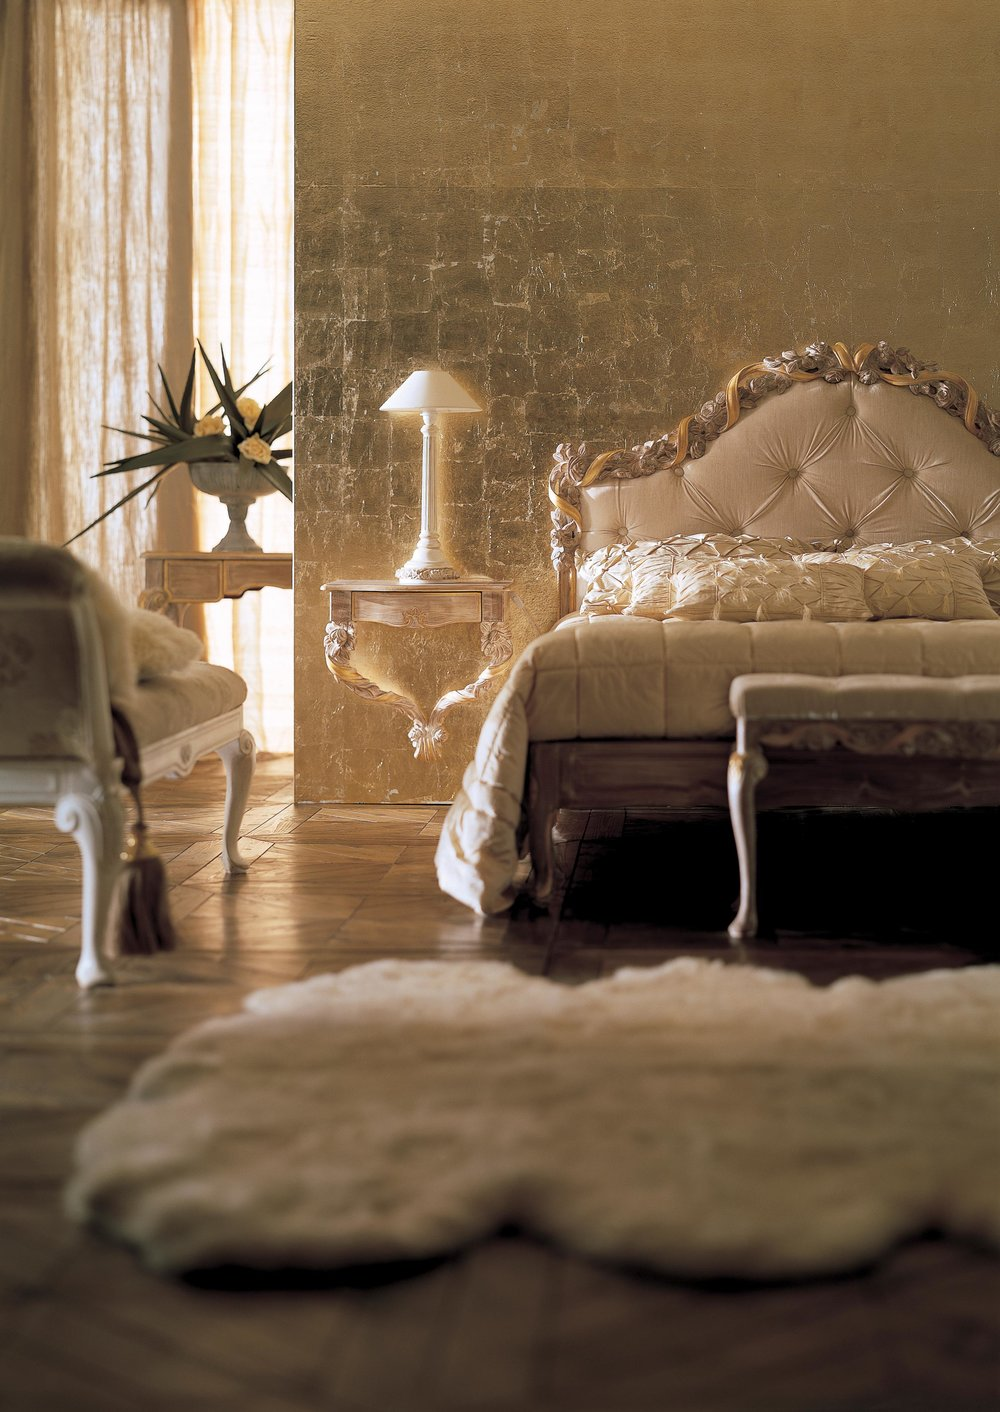 Savio Firmino's most iconic piece, Bed 1696, features the company's signature ribbon-and-roses motif along the edge of the headboard.Photo courtesy of Savio Firmino